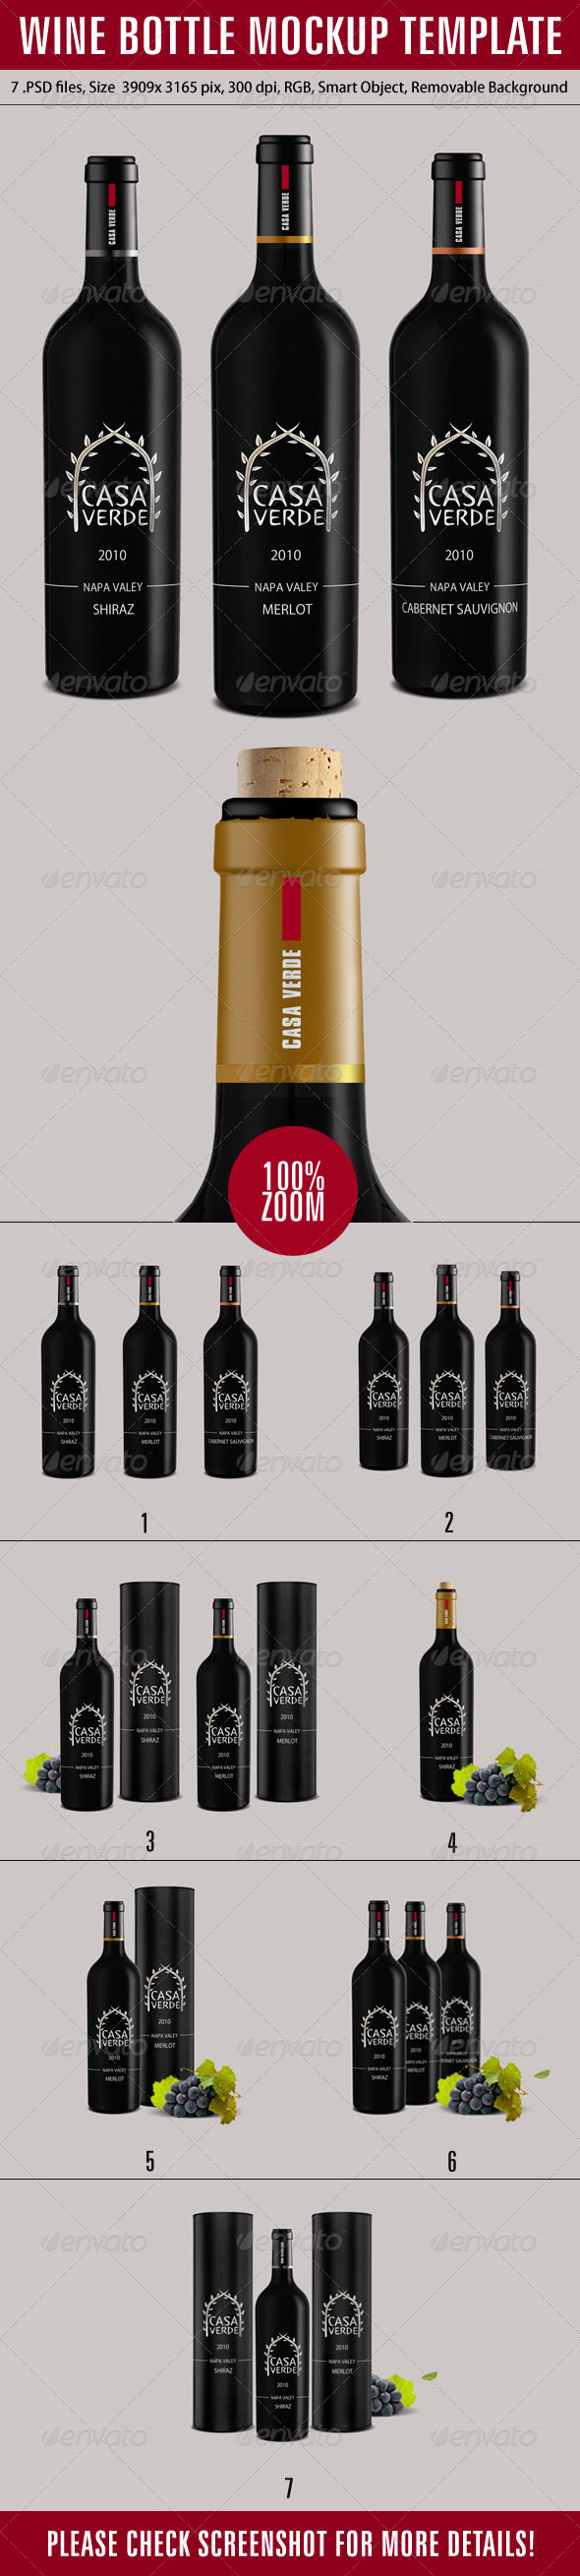 Wine Bottle Mockup Template - Product Mock-Ups Graphics